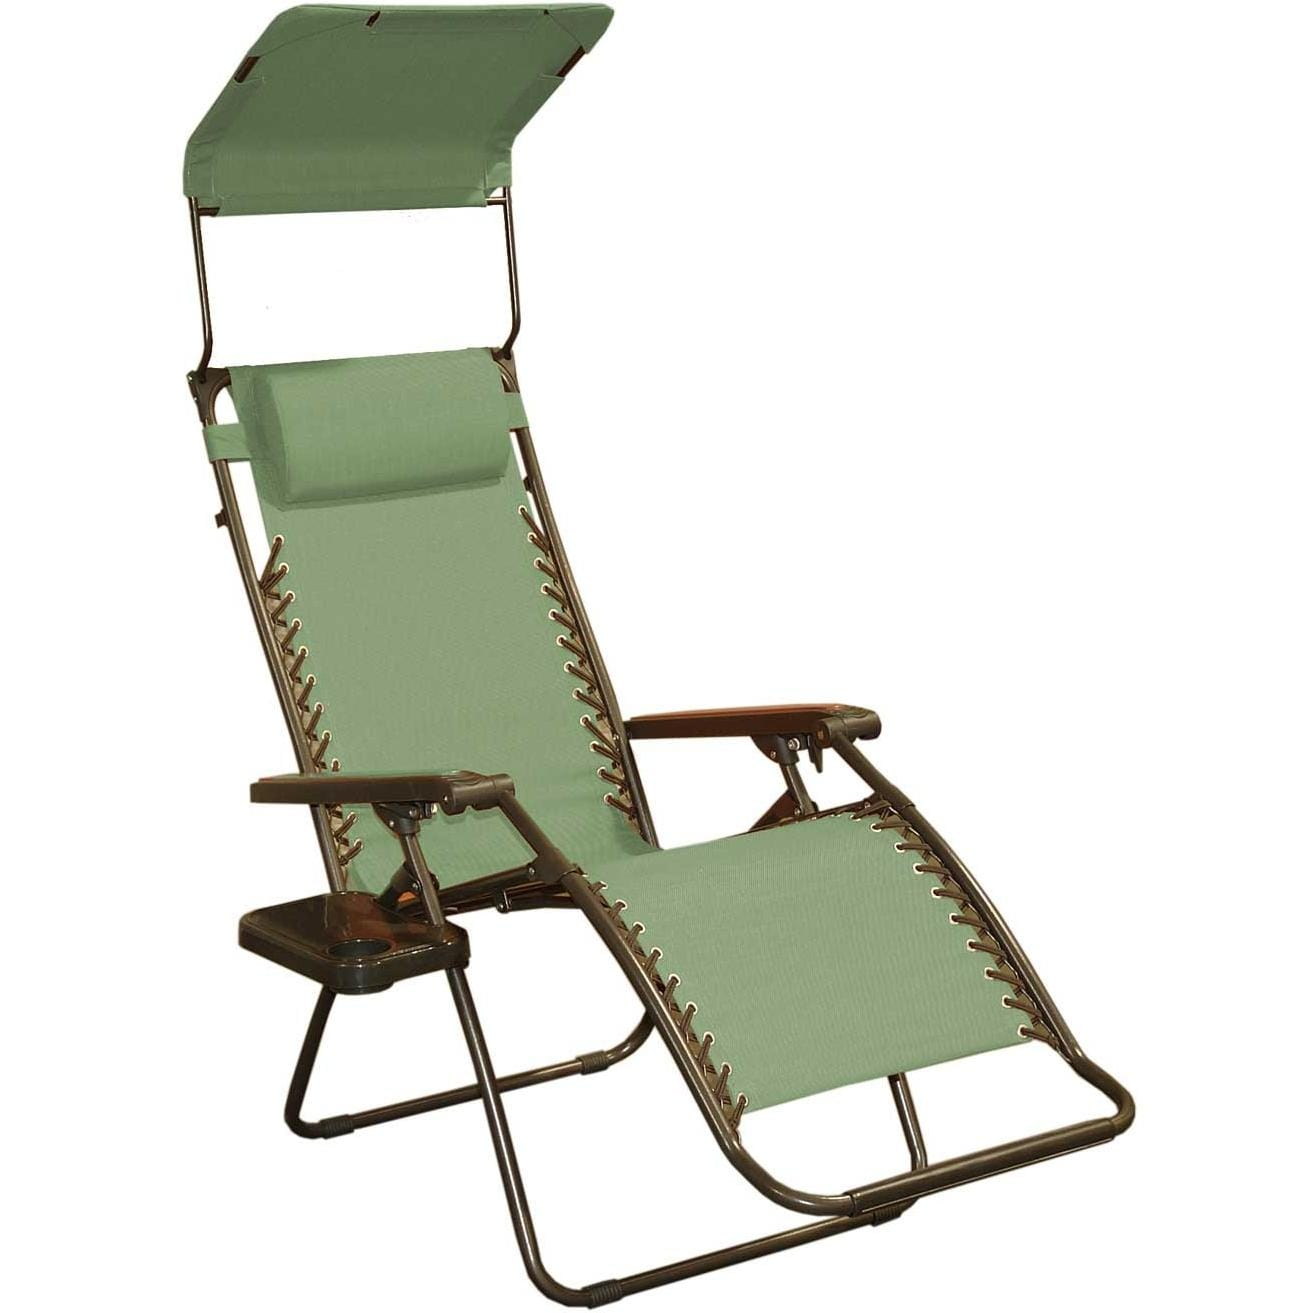 bliss hammocks extra wide gravity free recliner with canopy shade   sage green bliss hammocks extra wide gravity free recliner with canopy shade      rh   ultimatepatio